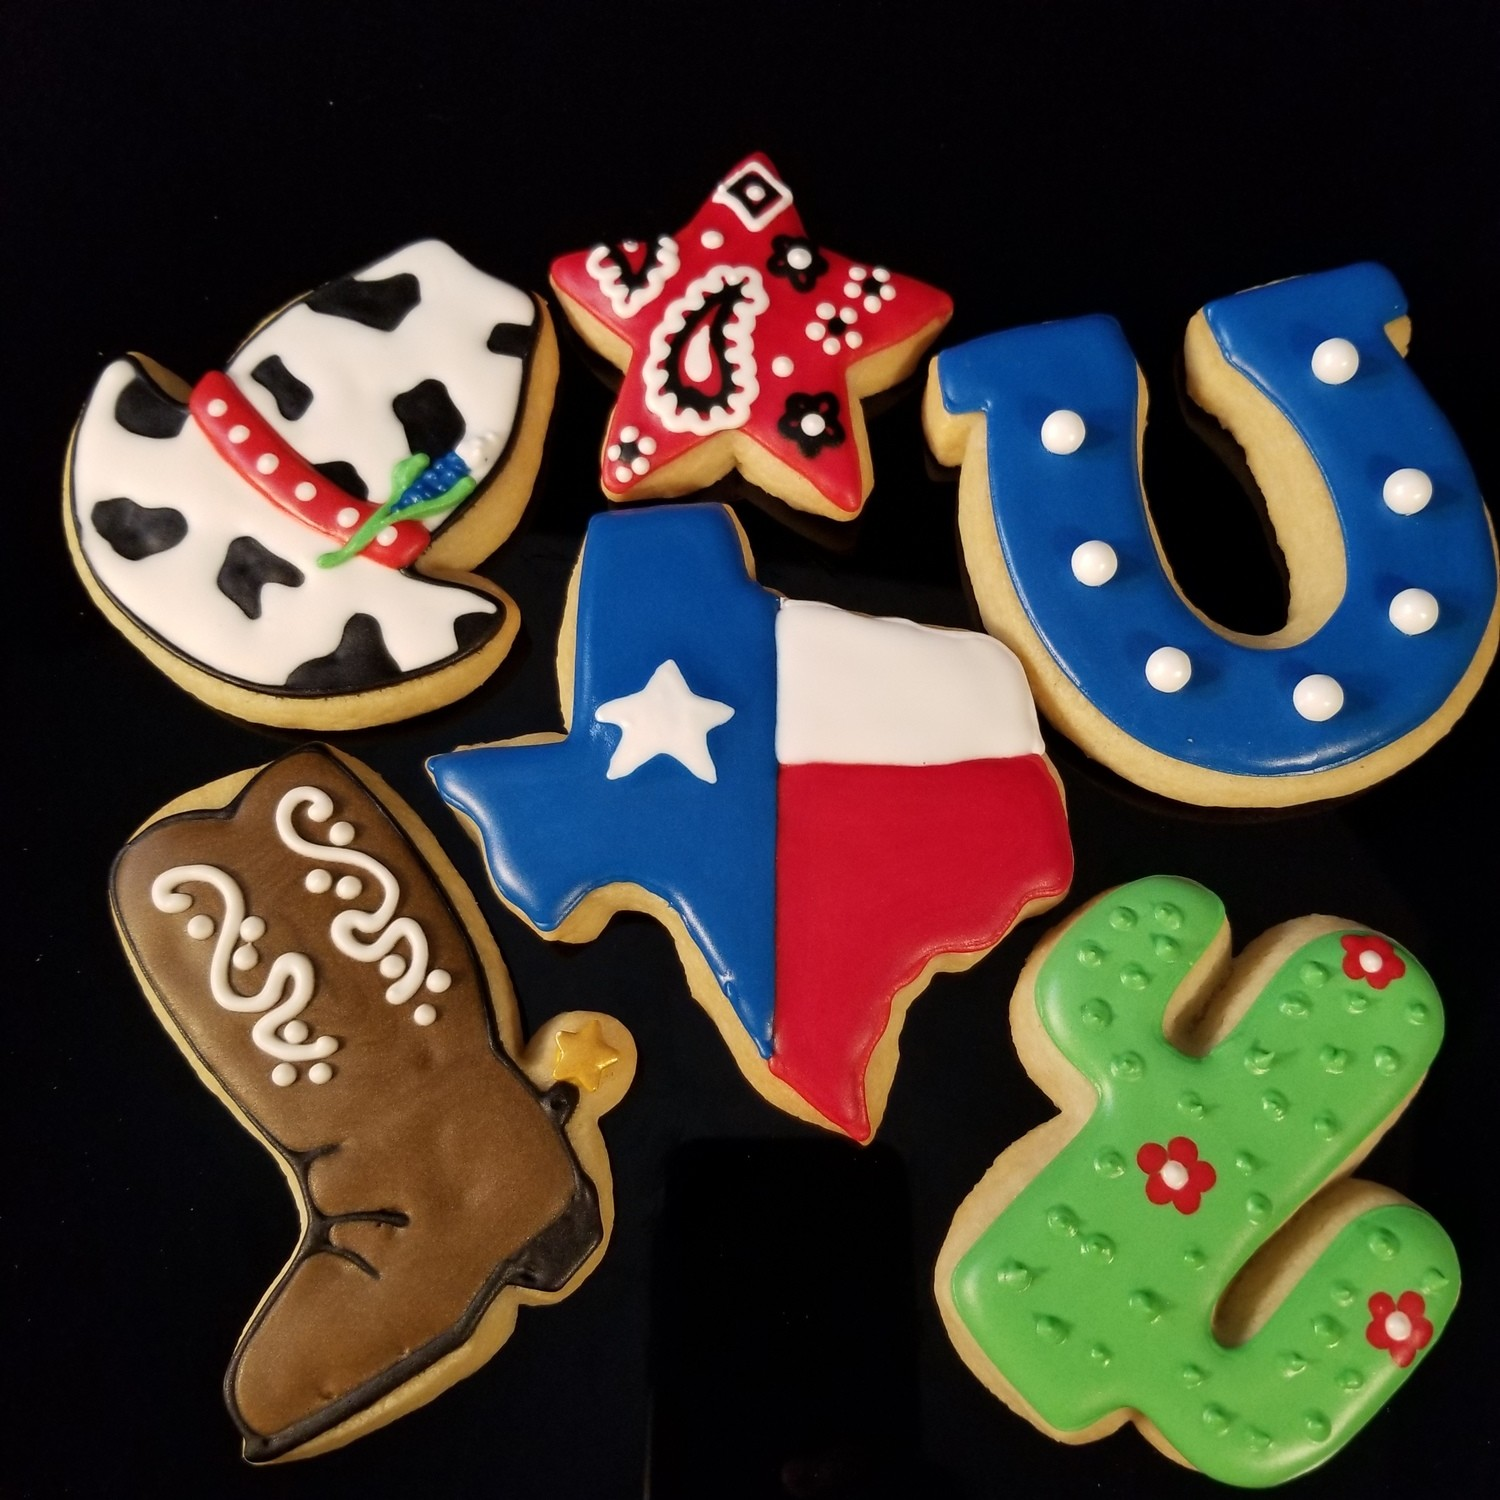 TEXAS Decorating Workshop - SUNDAY, MARCH 31, 2019 at 3:00 p.m. (THE POTPOURRI HOUSE) - CHILD TICKET (Age 6-12)